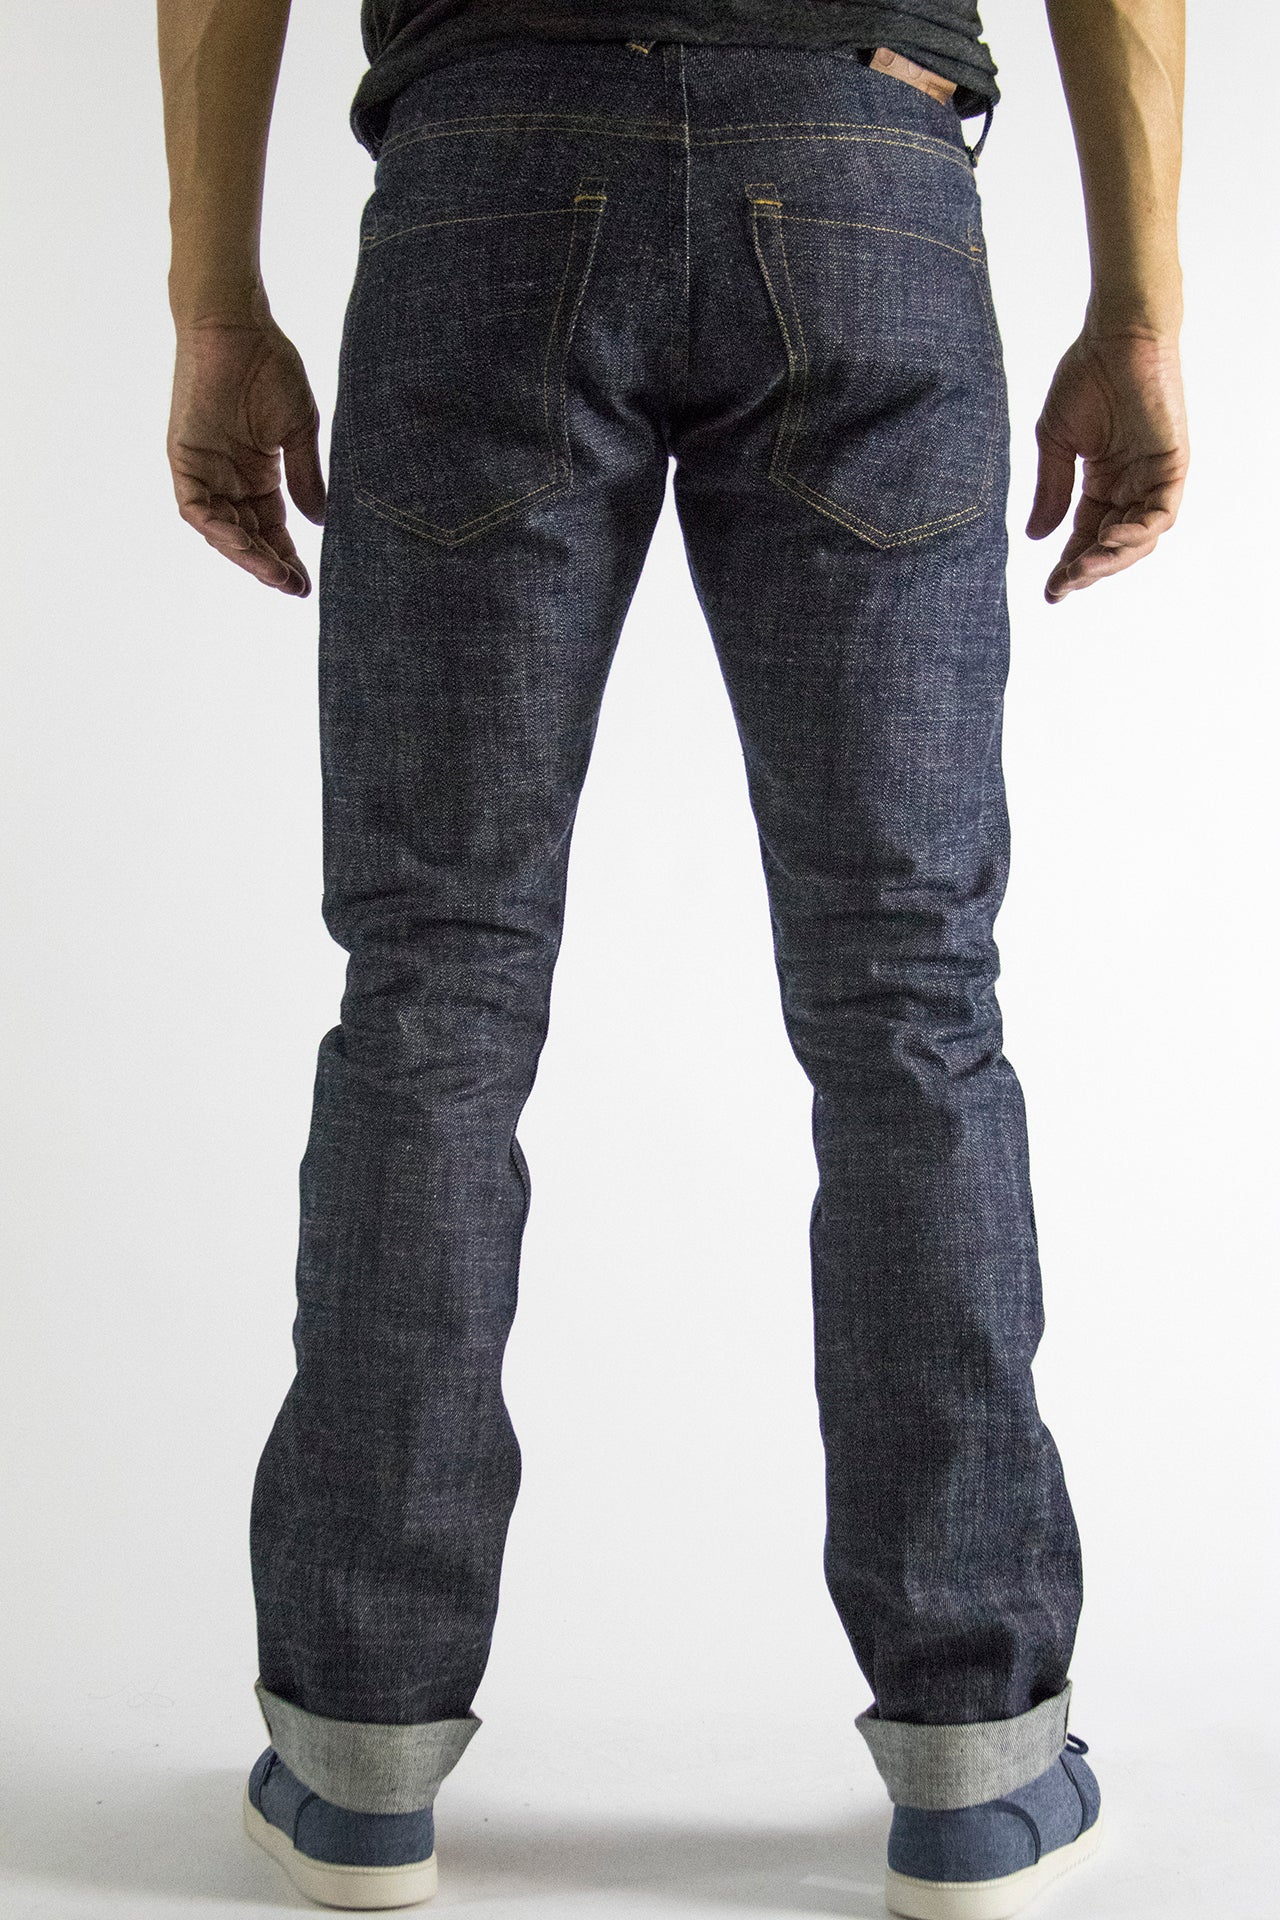 4.01.SV1 | Slim | Selvedge